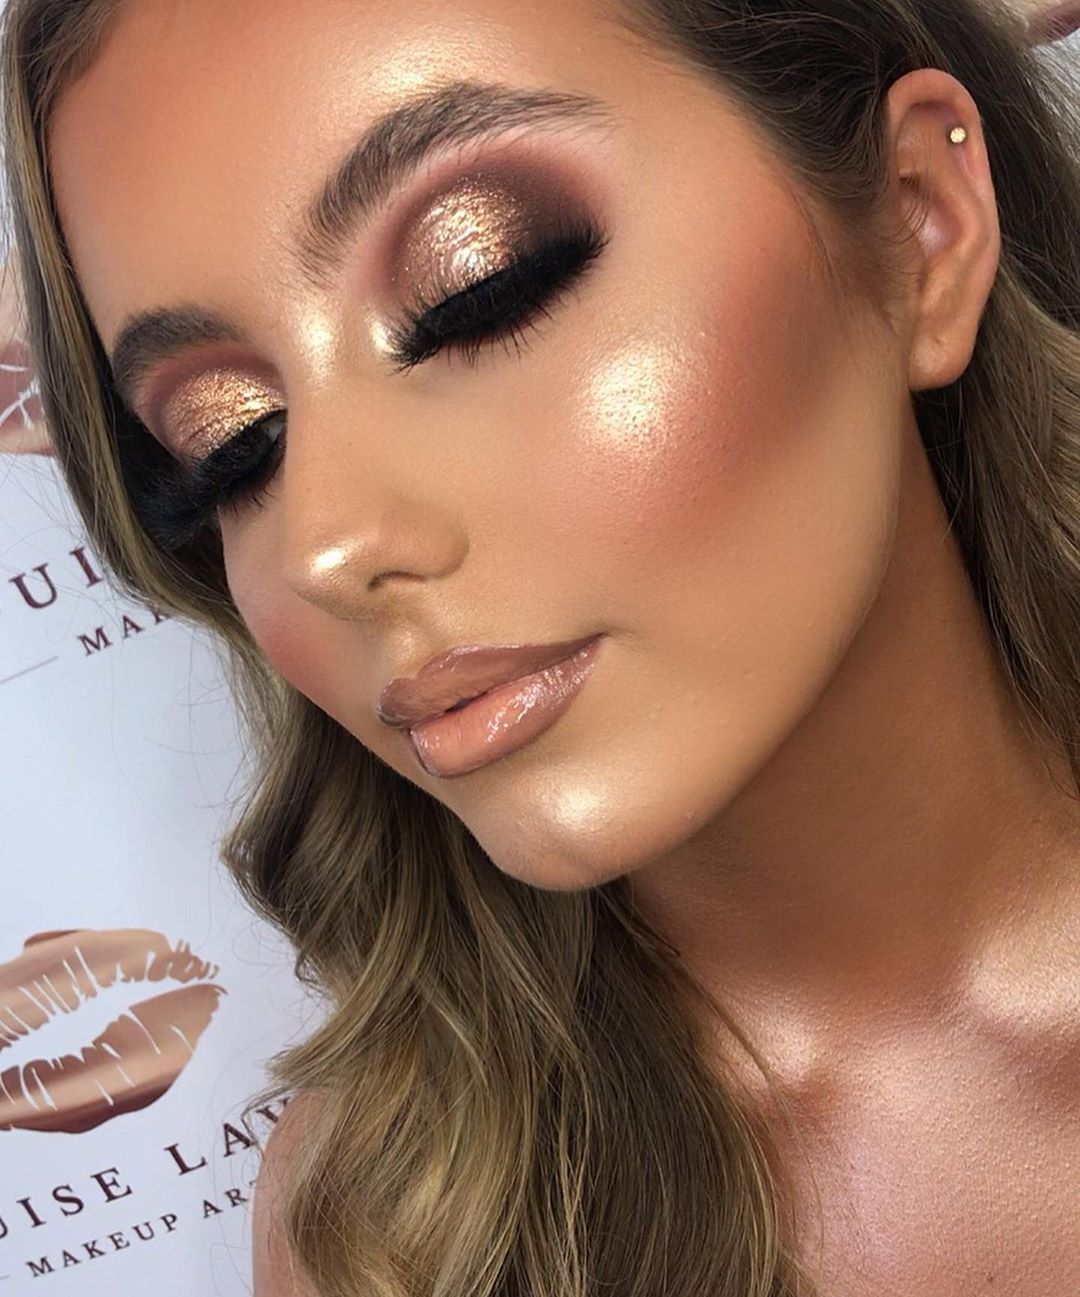 """LOUISE LAVERY on Instagram """"The bronziest glam EYES"""